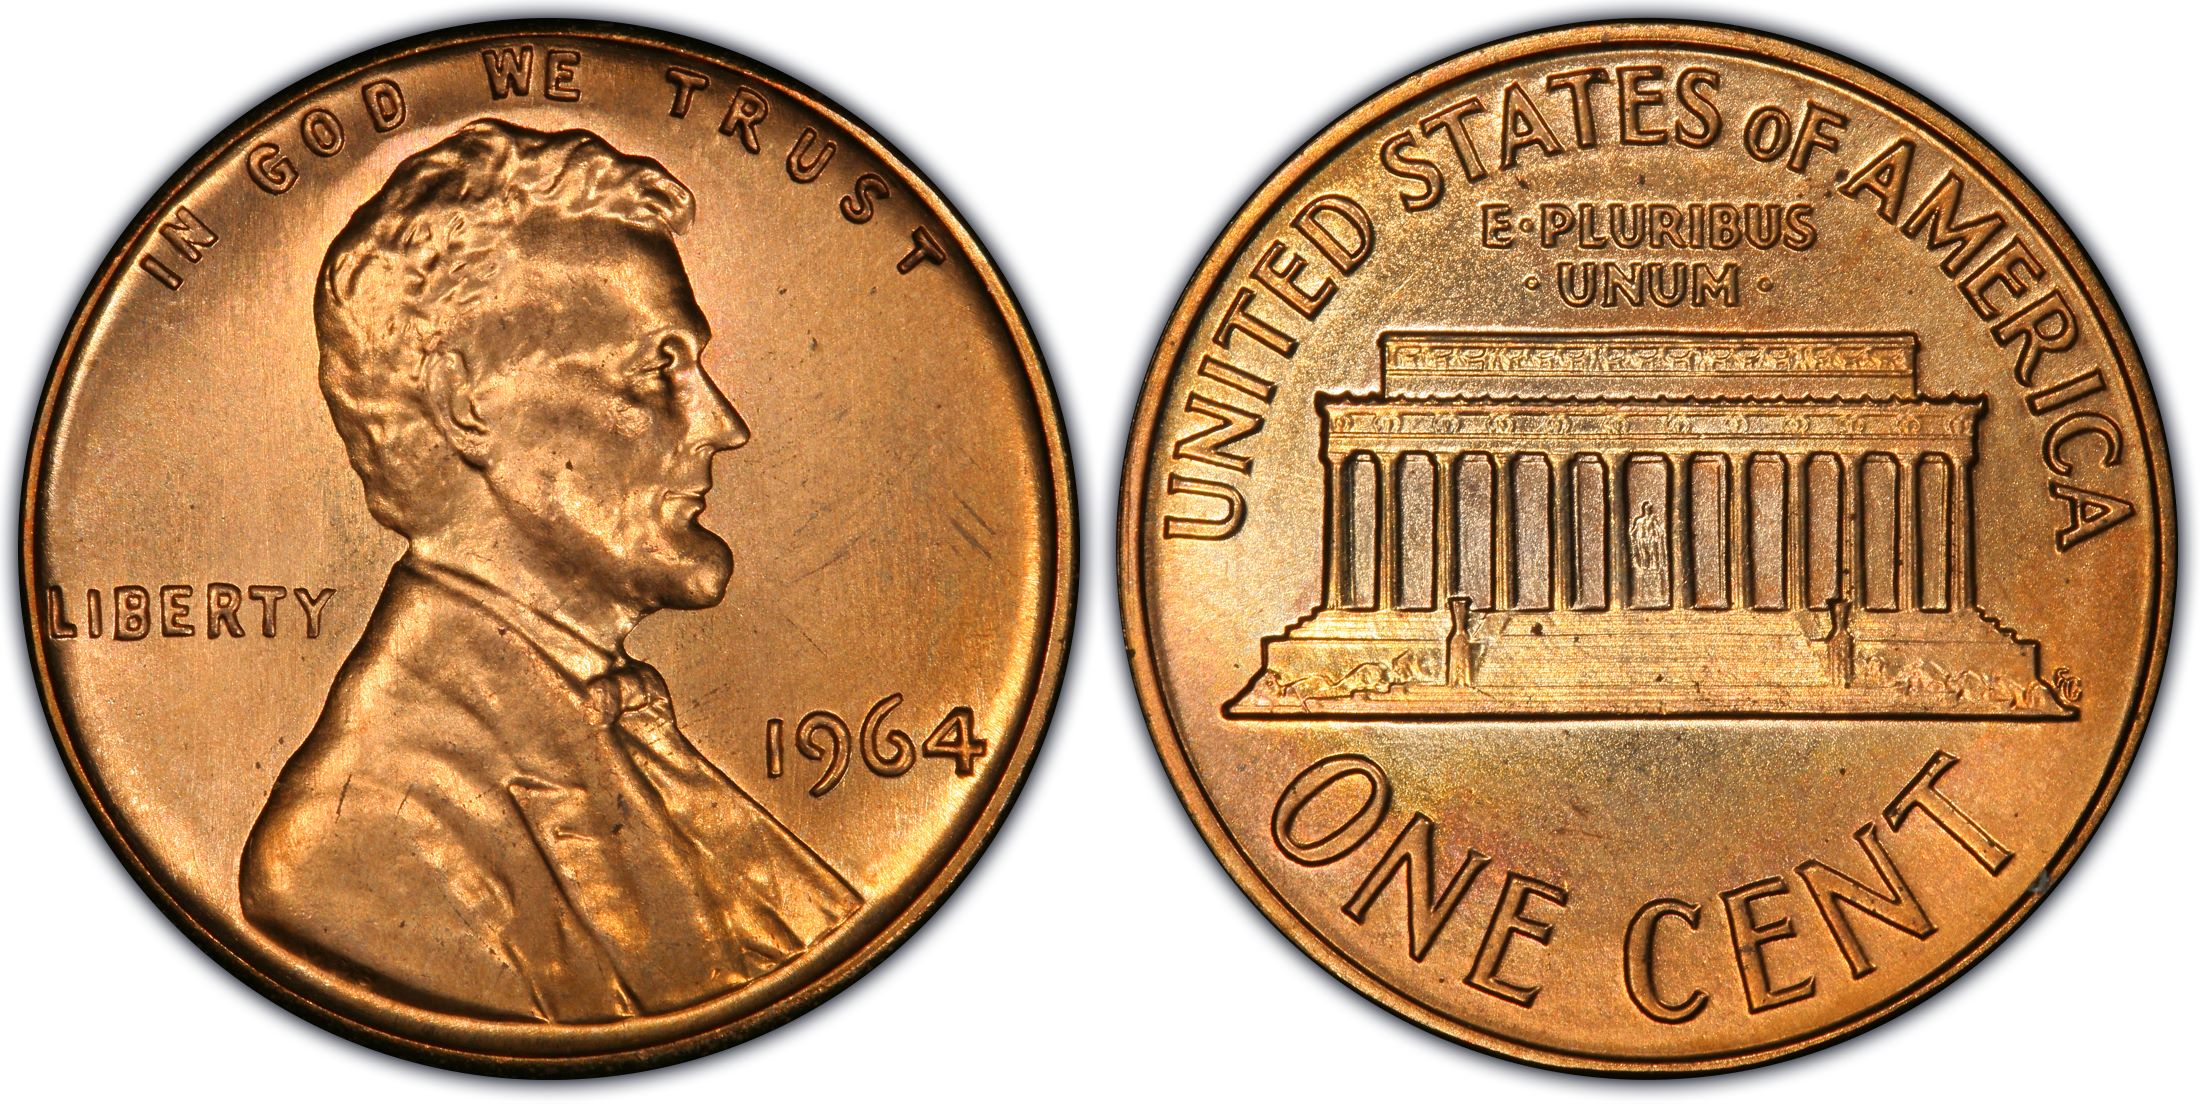 1964 1c sms rd special strike pcgs coinfacts pcgs sp66rd publicscrutiny Images